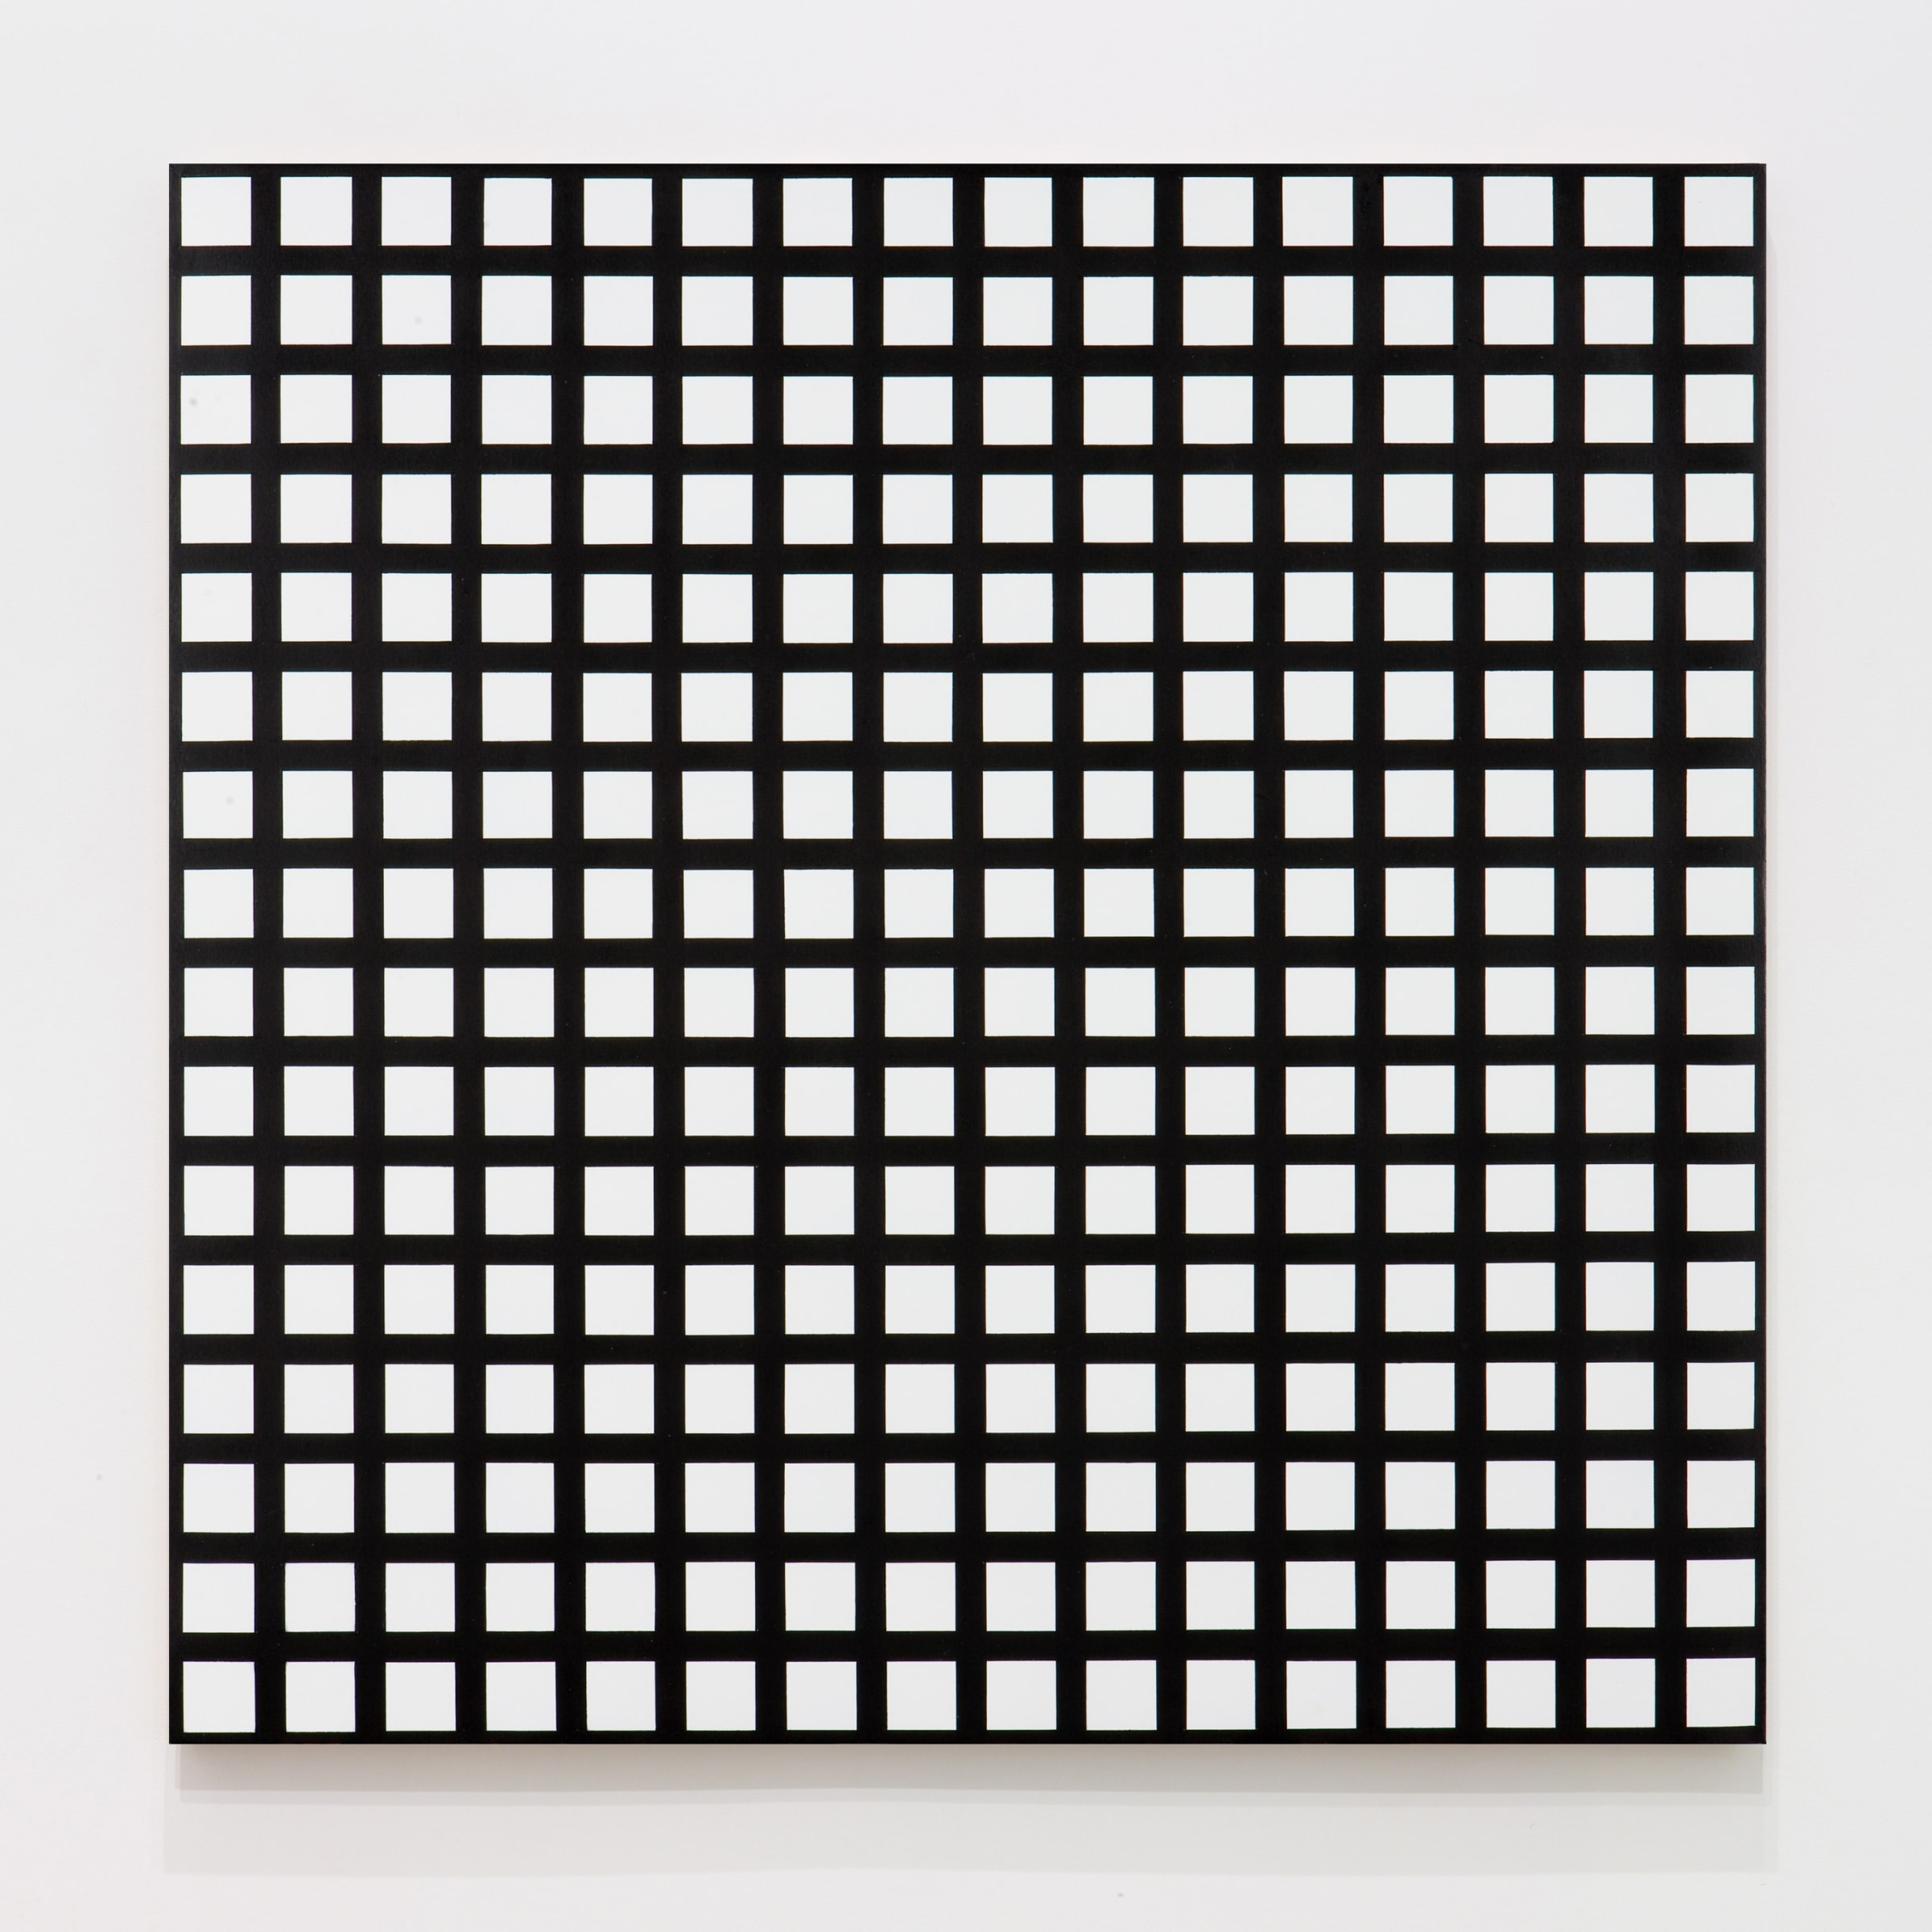 "<span class=""link fancybox-details-link""><a href=""/artists/121-francois-morellet/works/10323-francois-morellet-trames-de-256-carres-reguliers-1972/"">View Detail Page</a></span><div class=""artist""><span class=""artist""><strong>FRANCOIS MORELLET</strong></span></div>